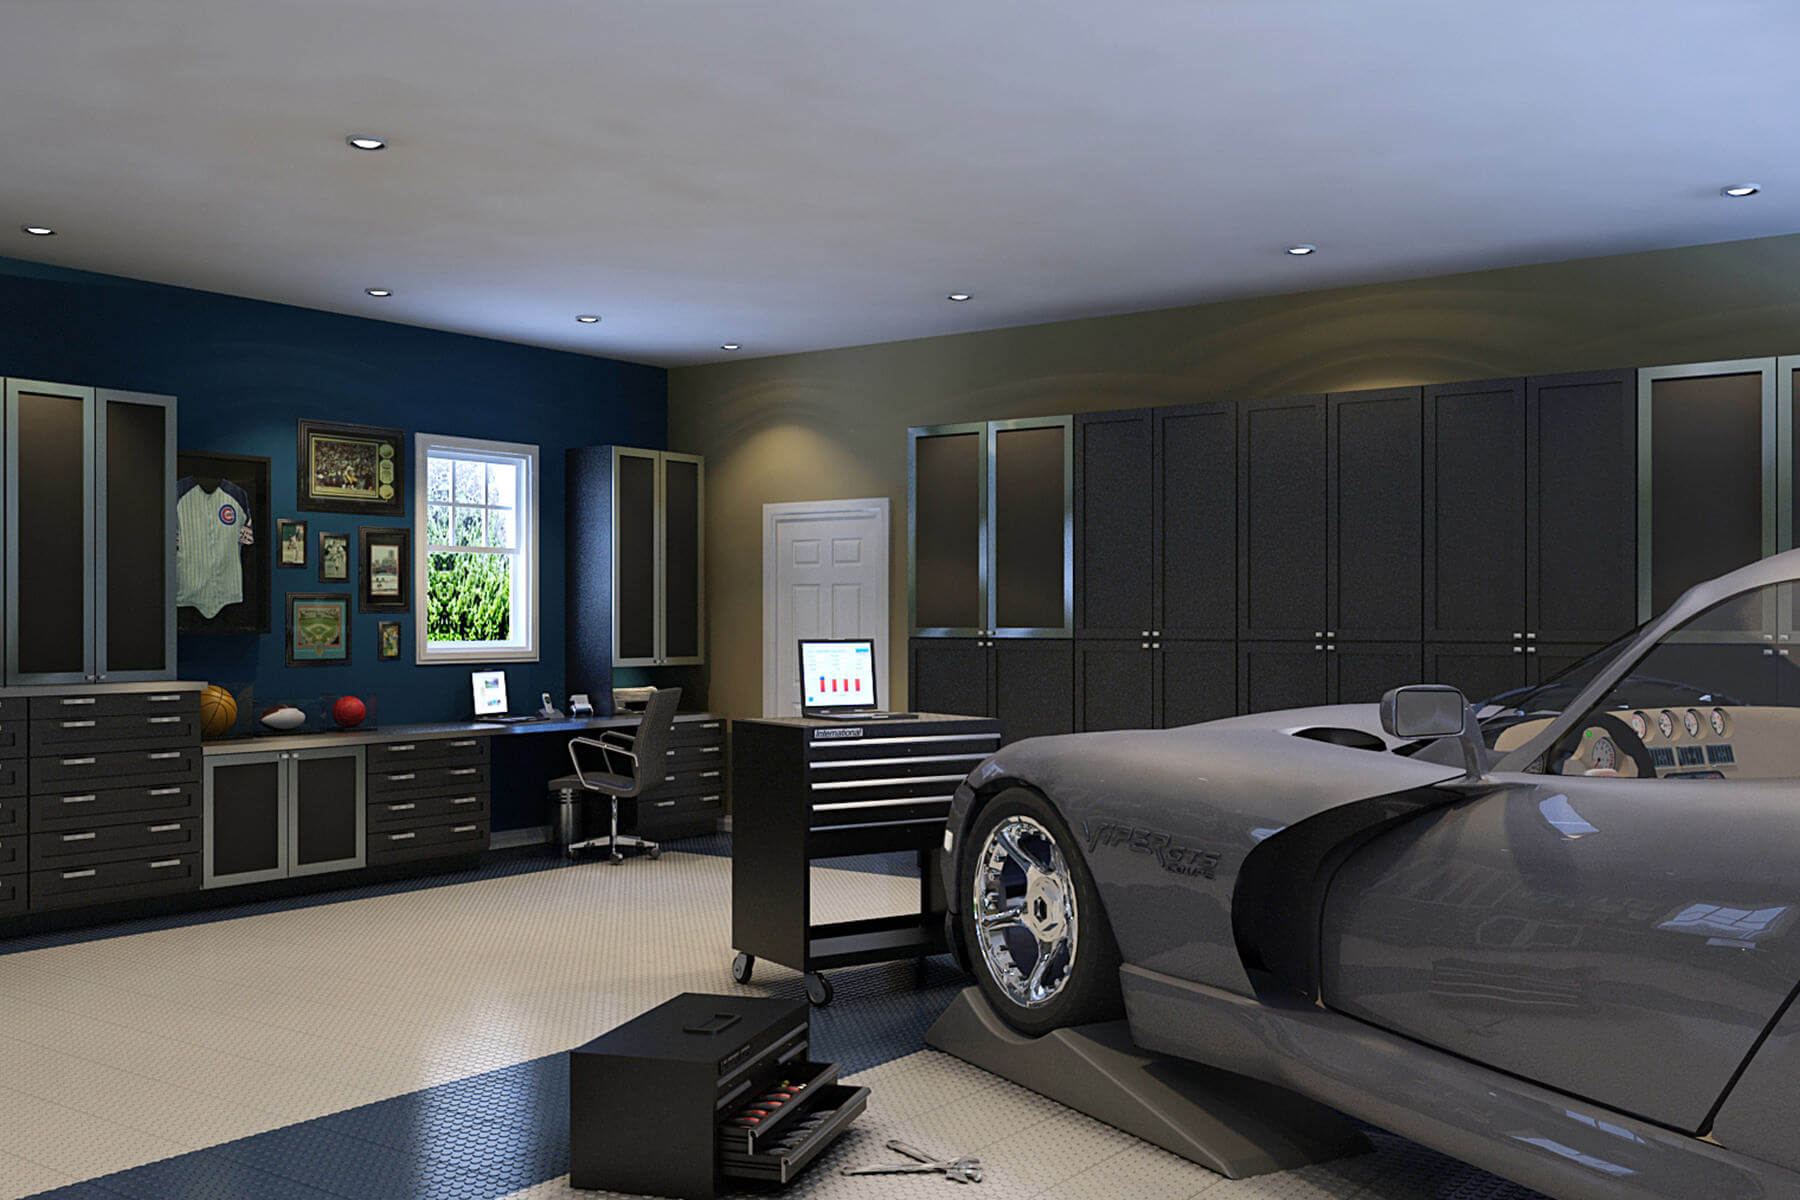 Easily a man cave this masculine elegant garage is designed in silver and black and made of completely waterproof resin. Cabinet doors and drawers are ... & 29 Garage Storage Ideas (Plus 3 Garage Man Caves)